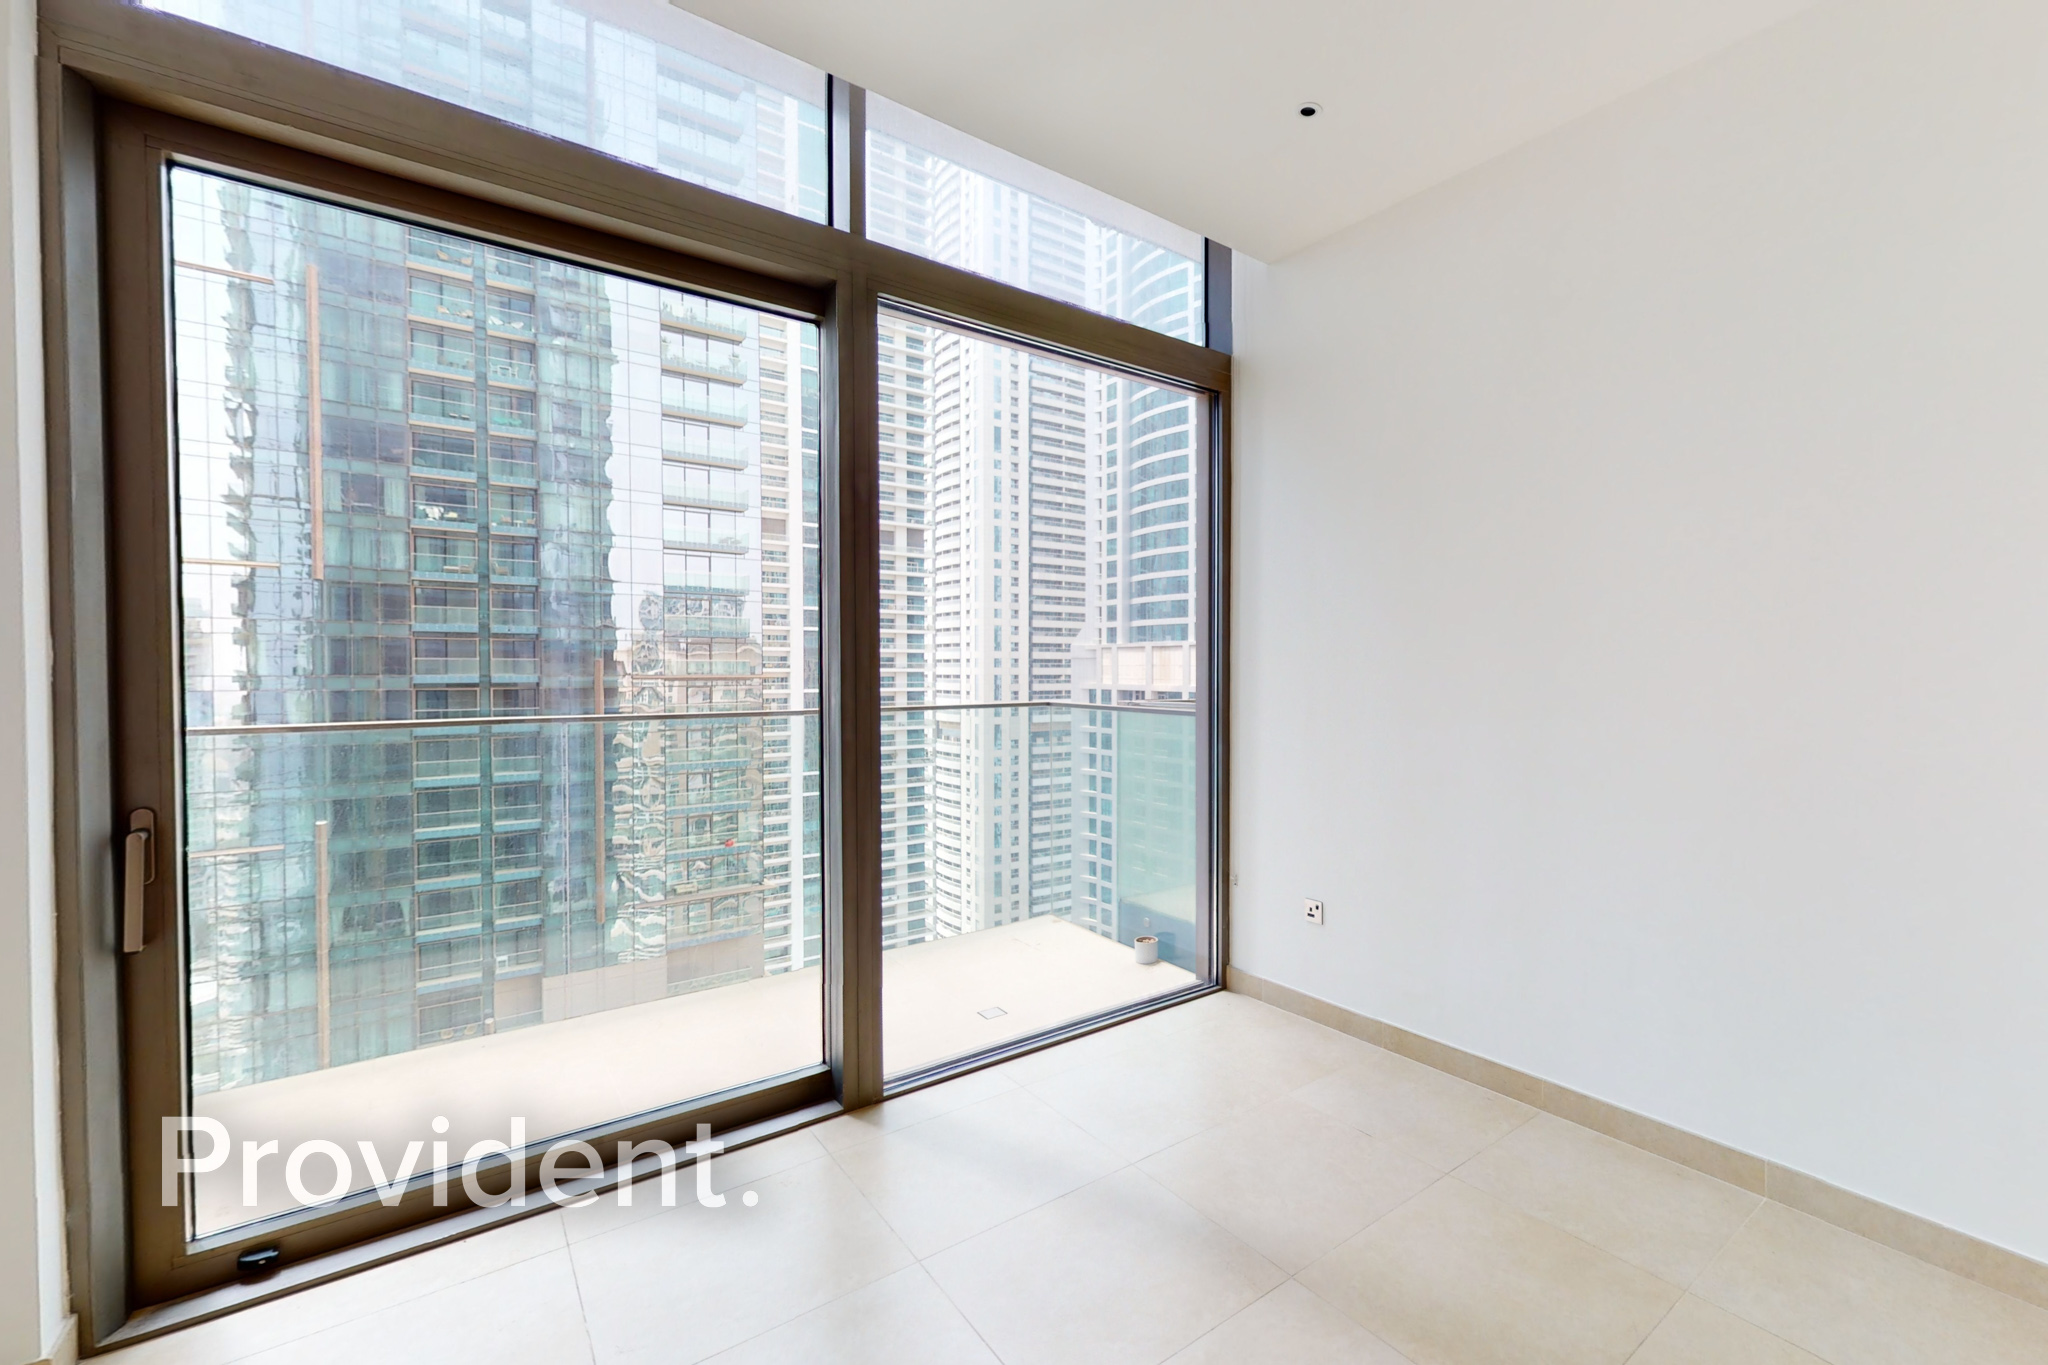 Rare 4BR+Maids   Full Marina View   Move In Ready